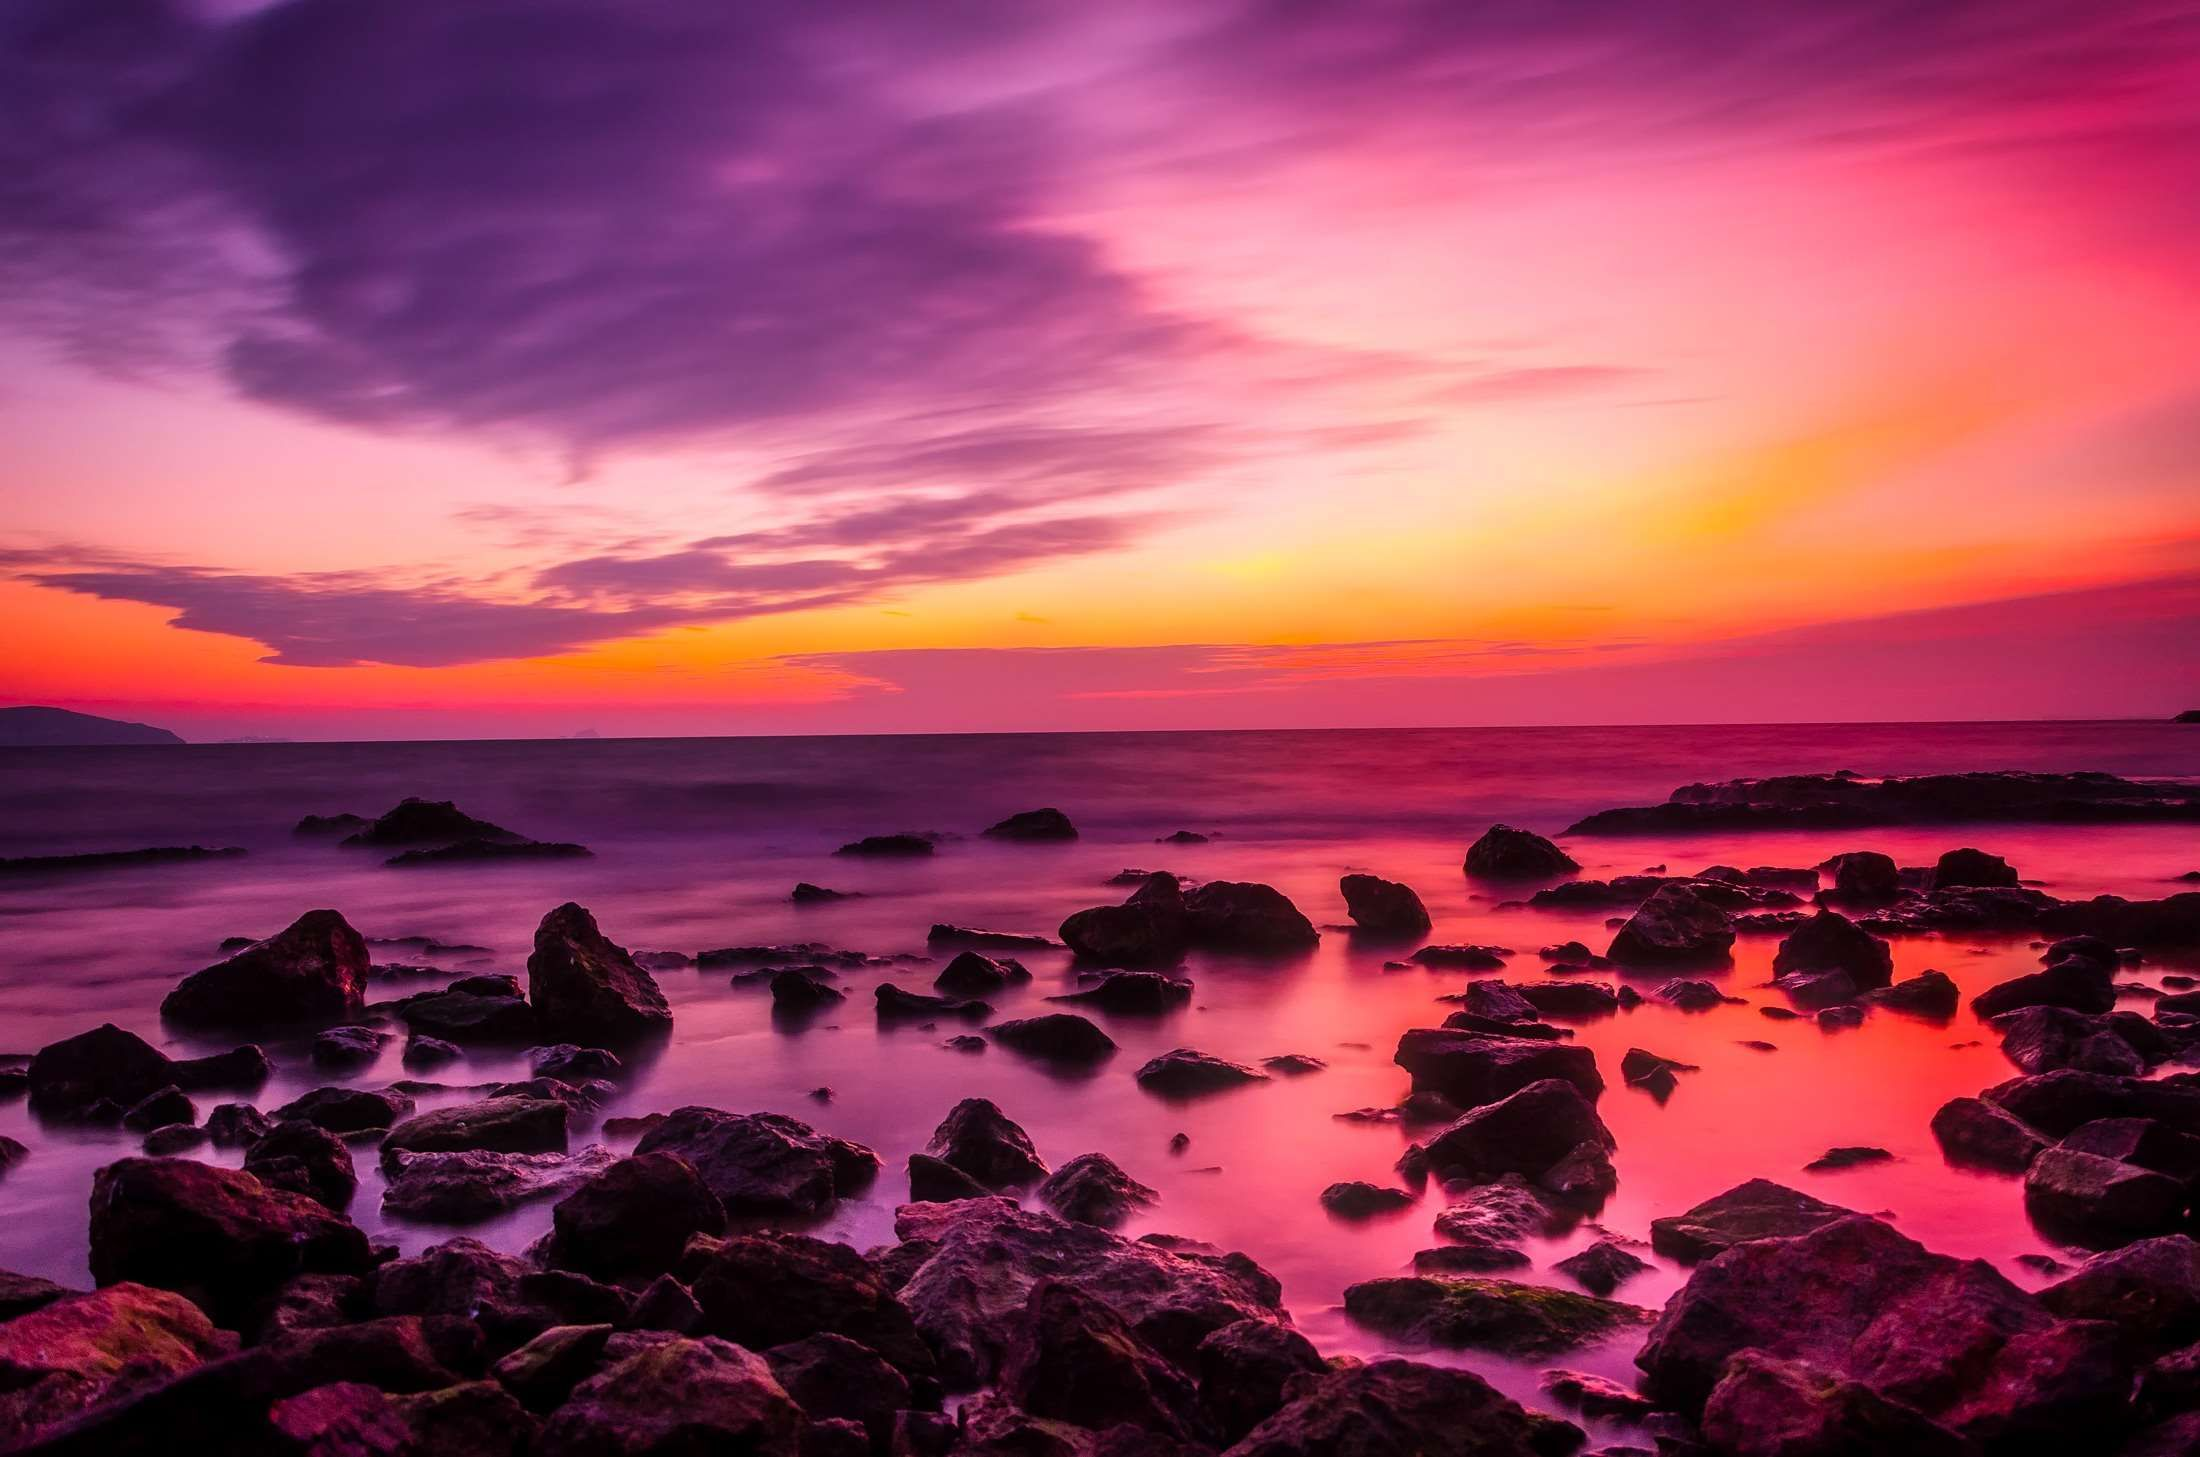 Beach Beautiful Boulders Calm Waters Clouds Colorful Colors Dawn Dusk Evening Hdr Horizon Land Beautiful Scenery Pictures Sunset Pictures Dusk Sky Pink clouds sunset dusk coast rocks